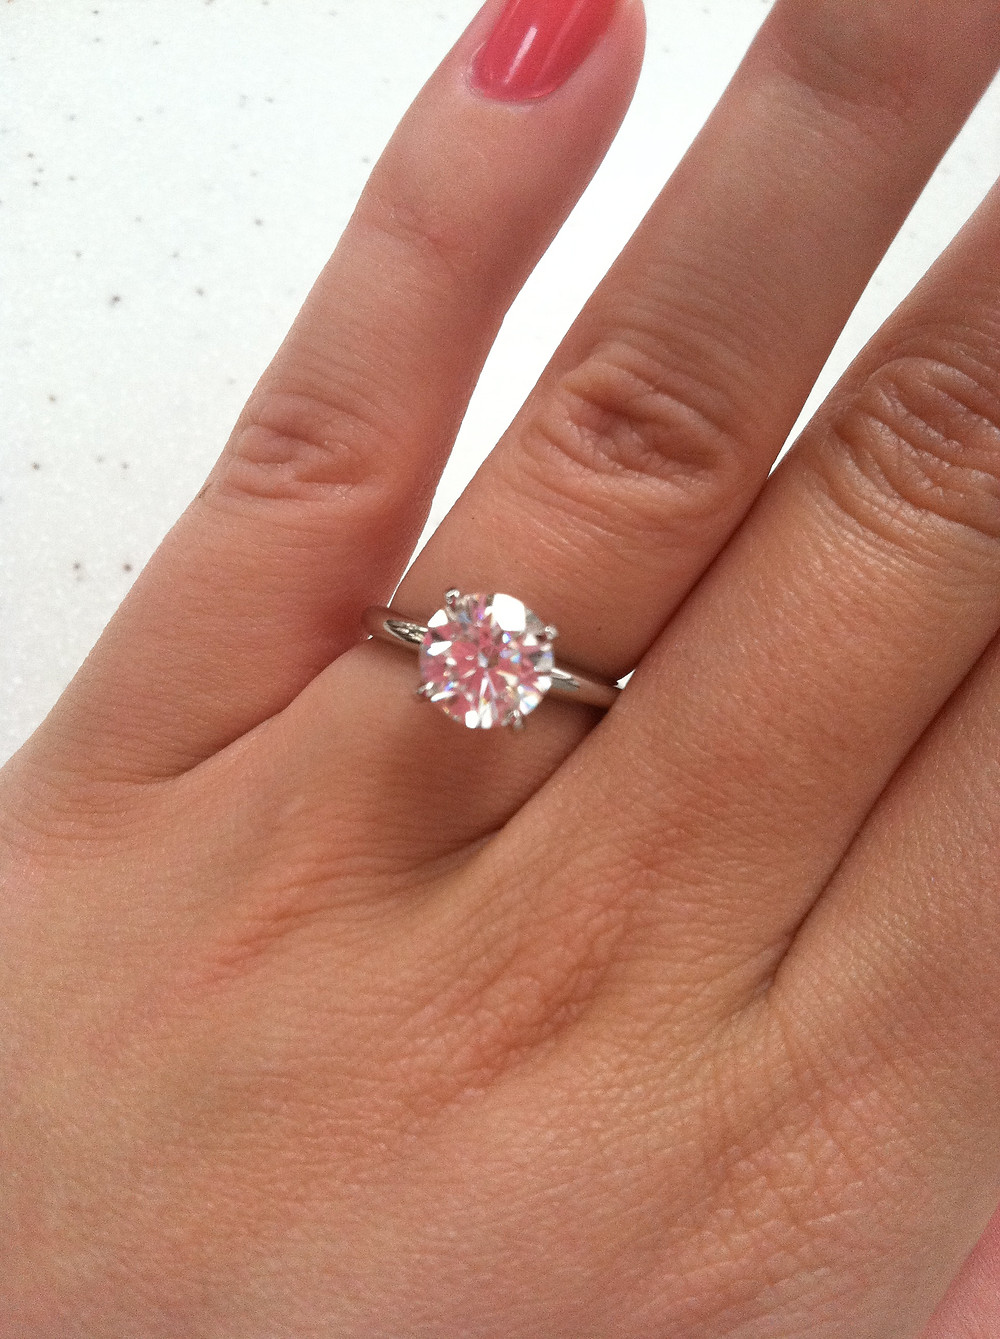 born-to-be-a-bride-engagement-ring-how-to-clean-diamonds-at-home